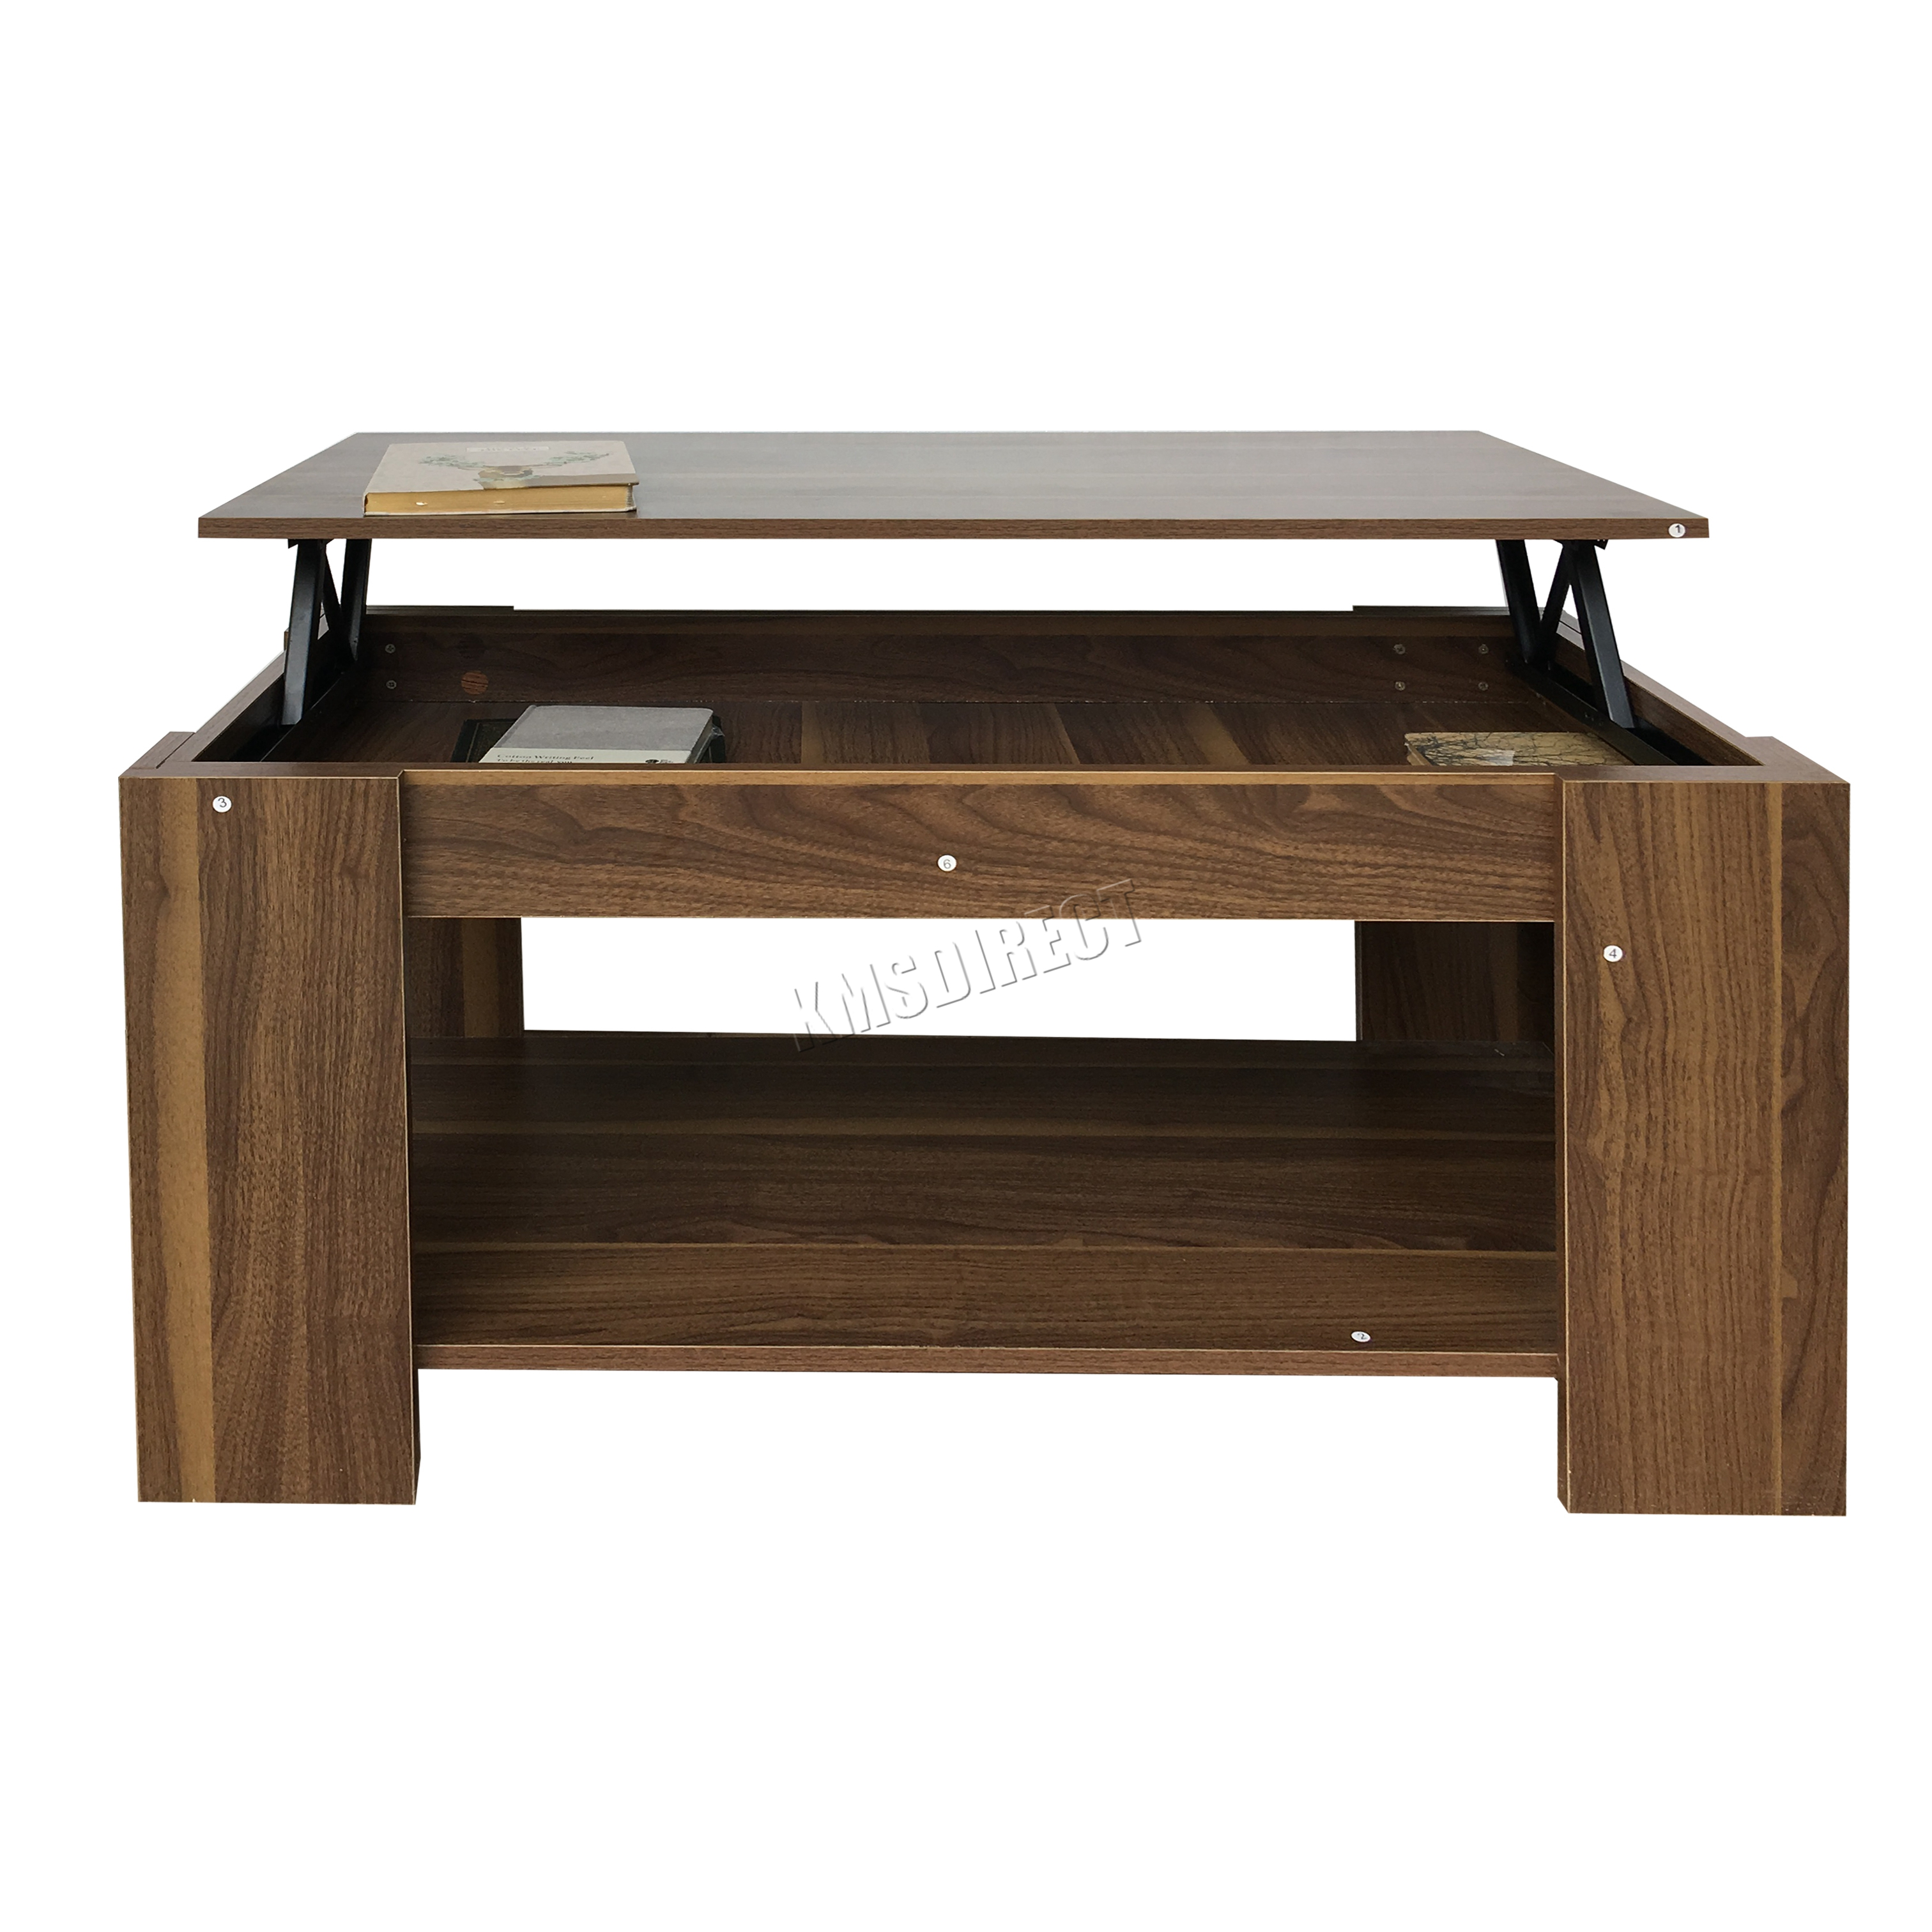 Foxhunter lift up top coffee table mdf with storage and for Coffee tables that lift up